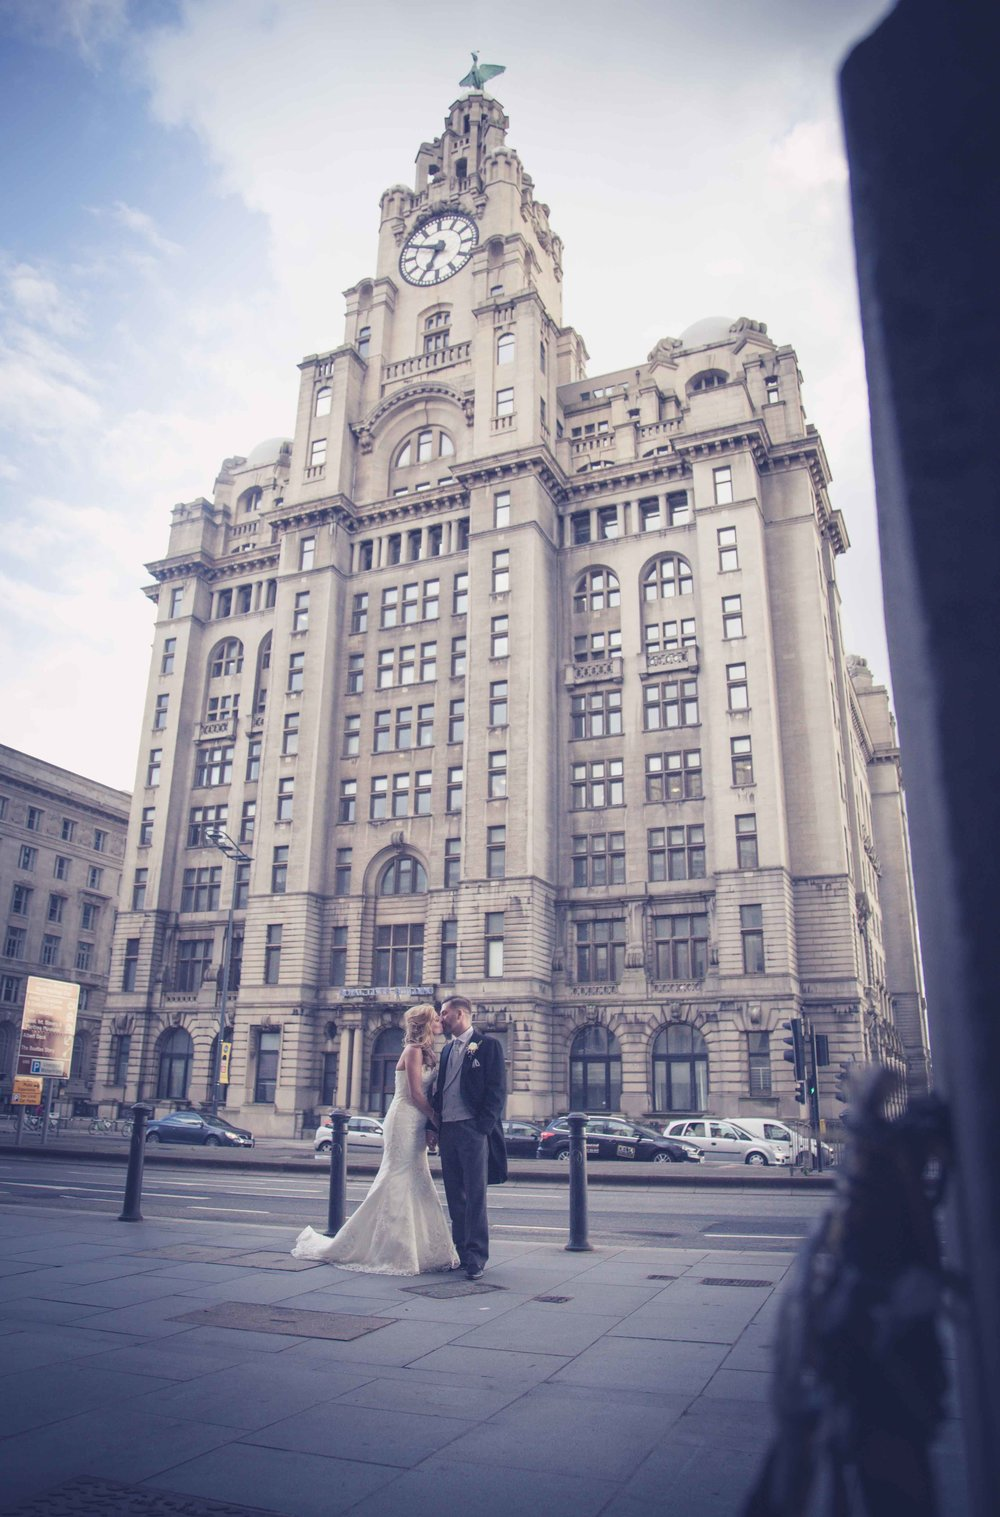 Couple outside the Liver building